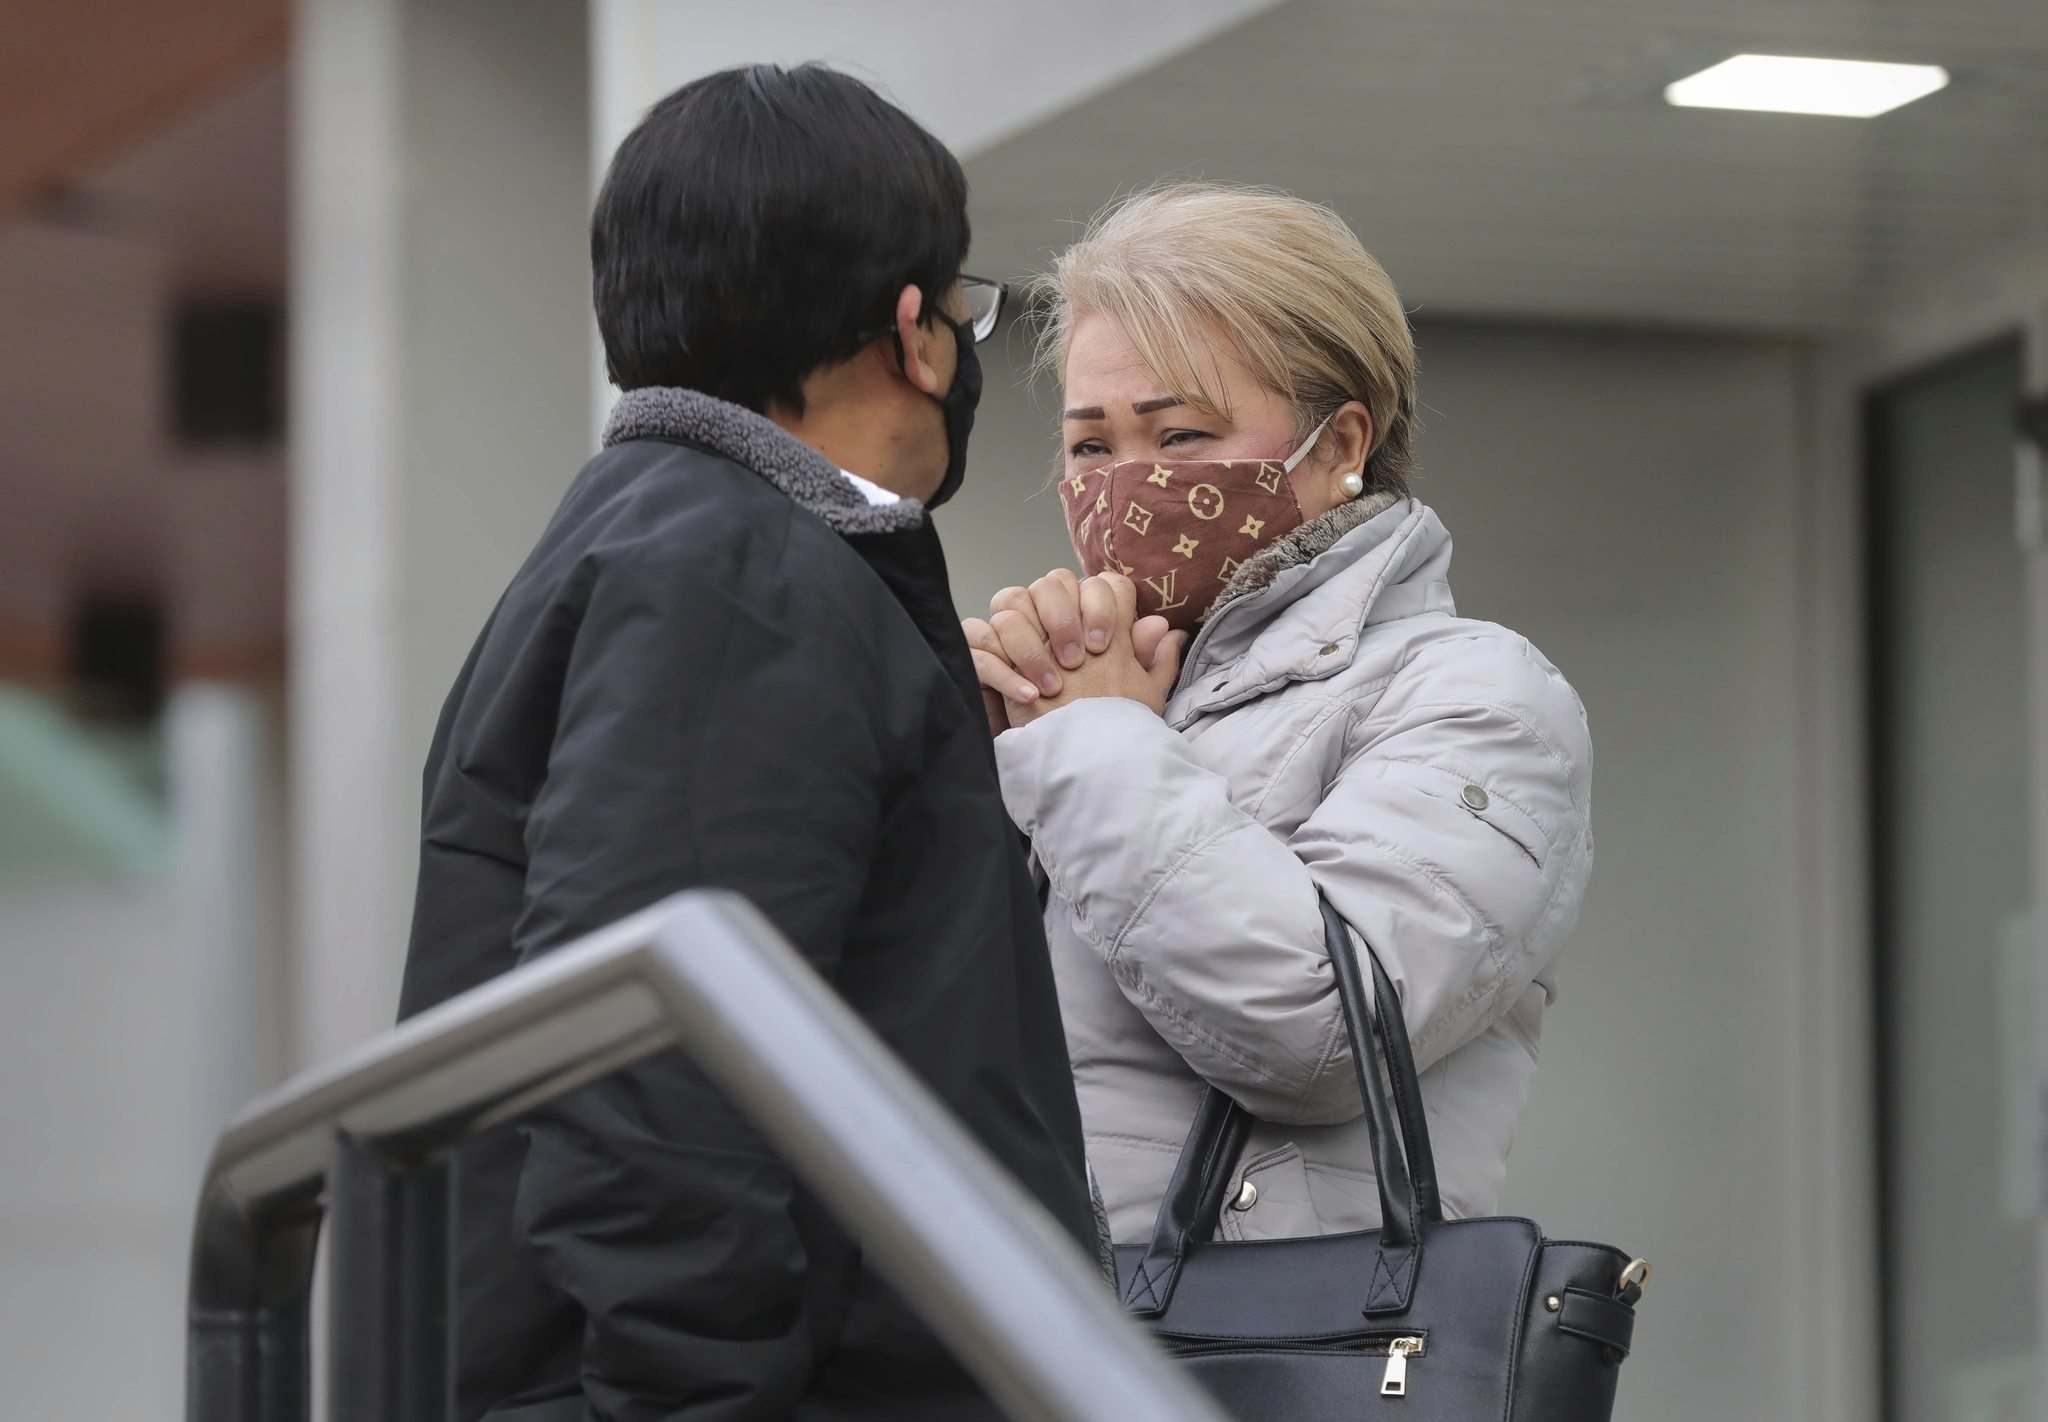 Imelda and Jaime Adao Sr. leave court after hearing Ronald Chubb plead guilty to second-degree murder and co-accused Geordie James plead guilty to manslaughter in the March 2019 killing of their son Jaime Adao.</p>